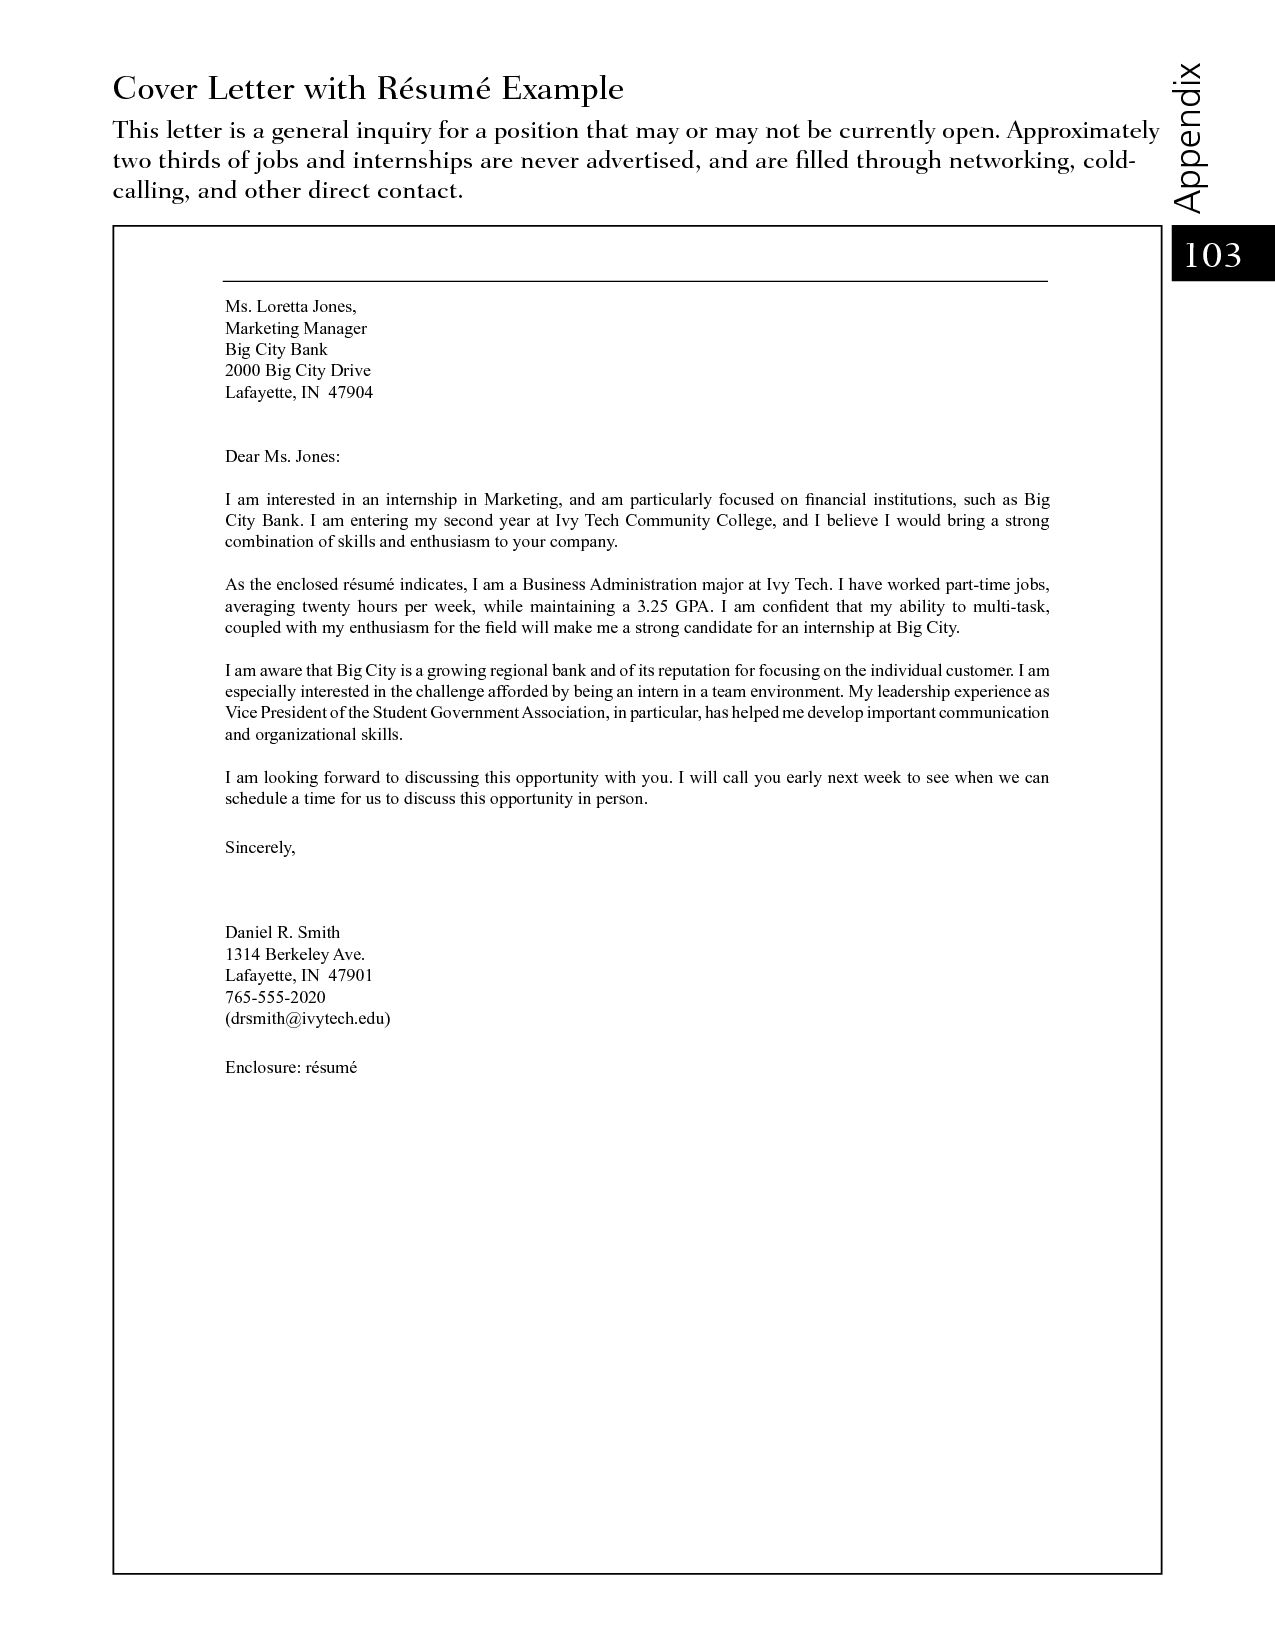 23 Example Cover Letter For Resume Cover Letter For Resume Cover Letter Template Free Cover Letter Template Combined resume and cover letter